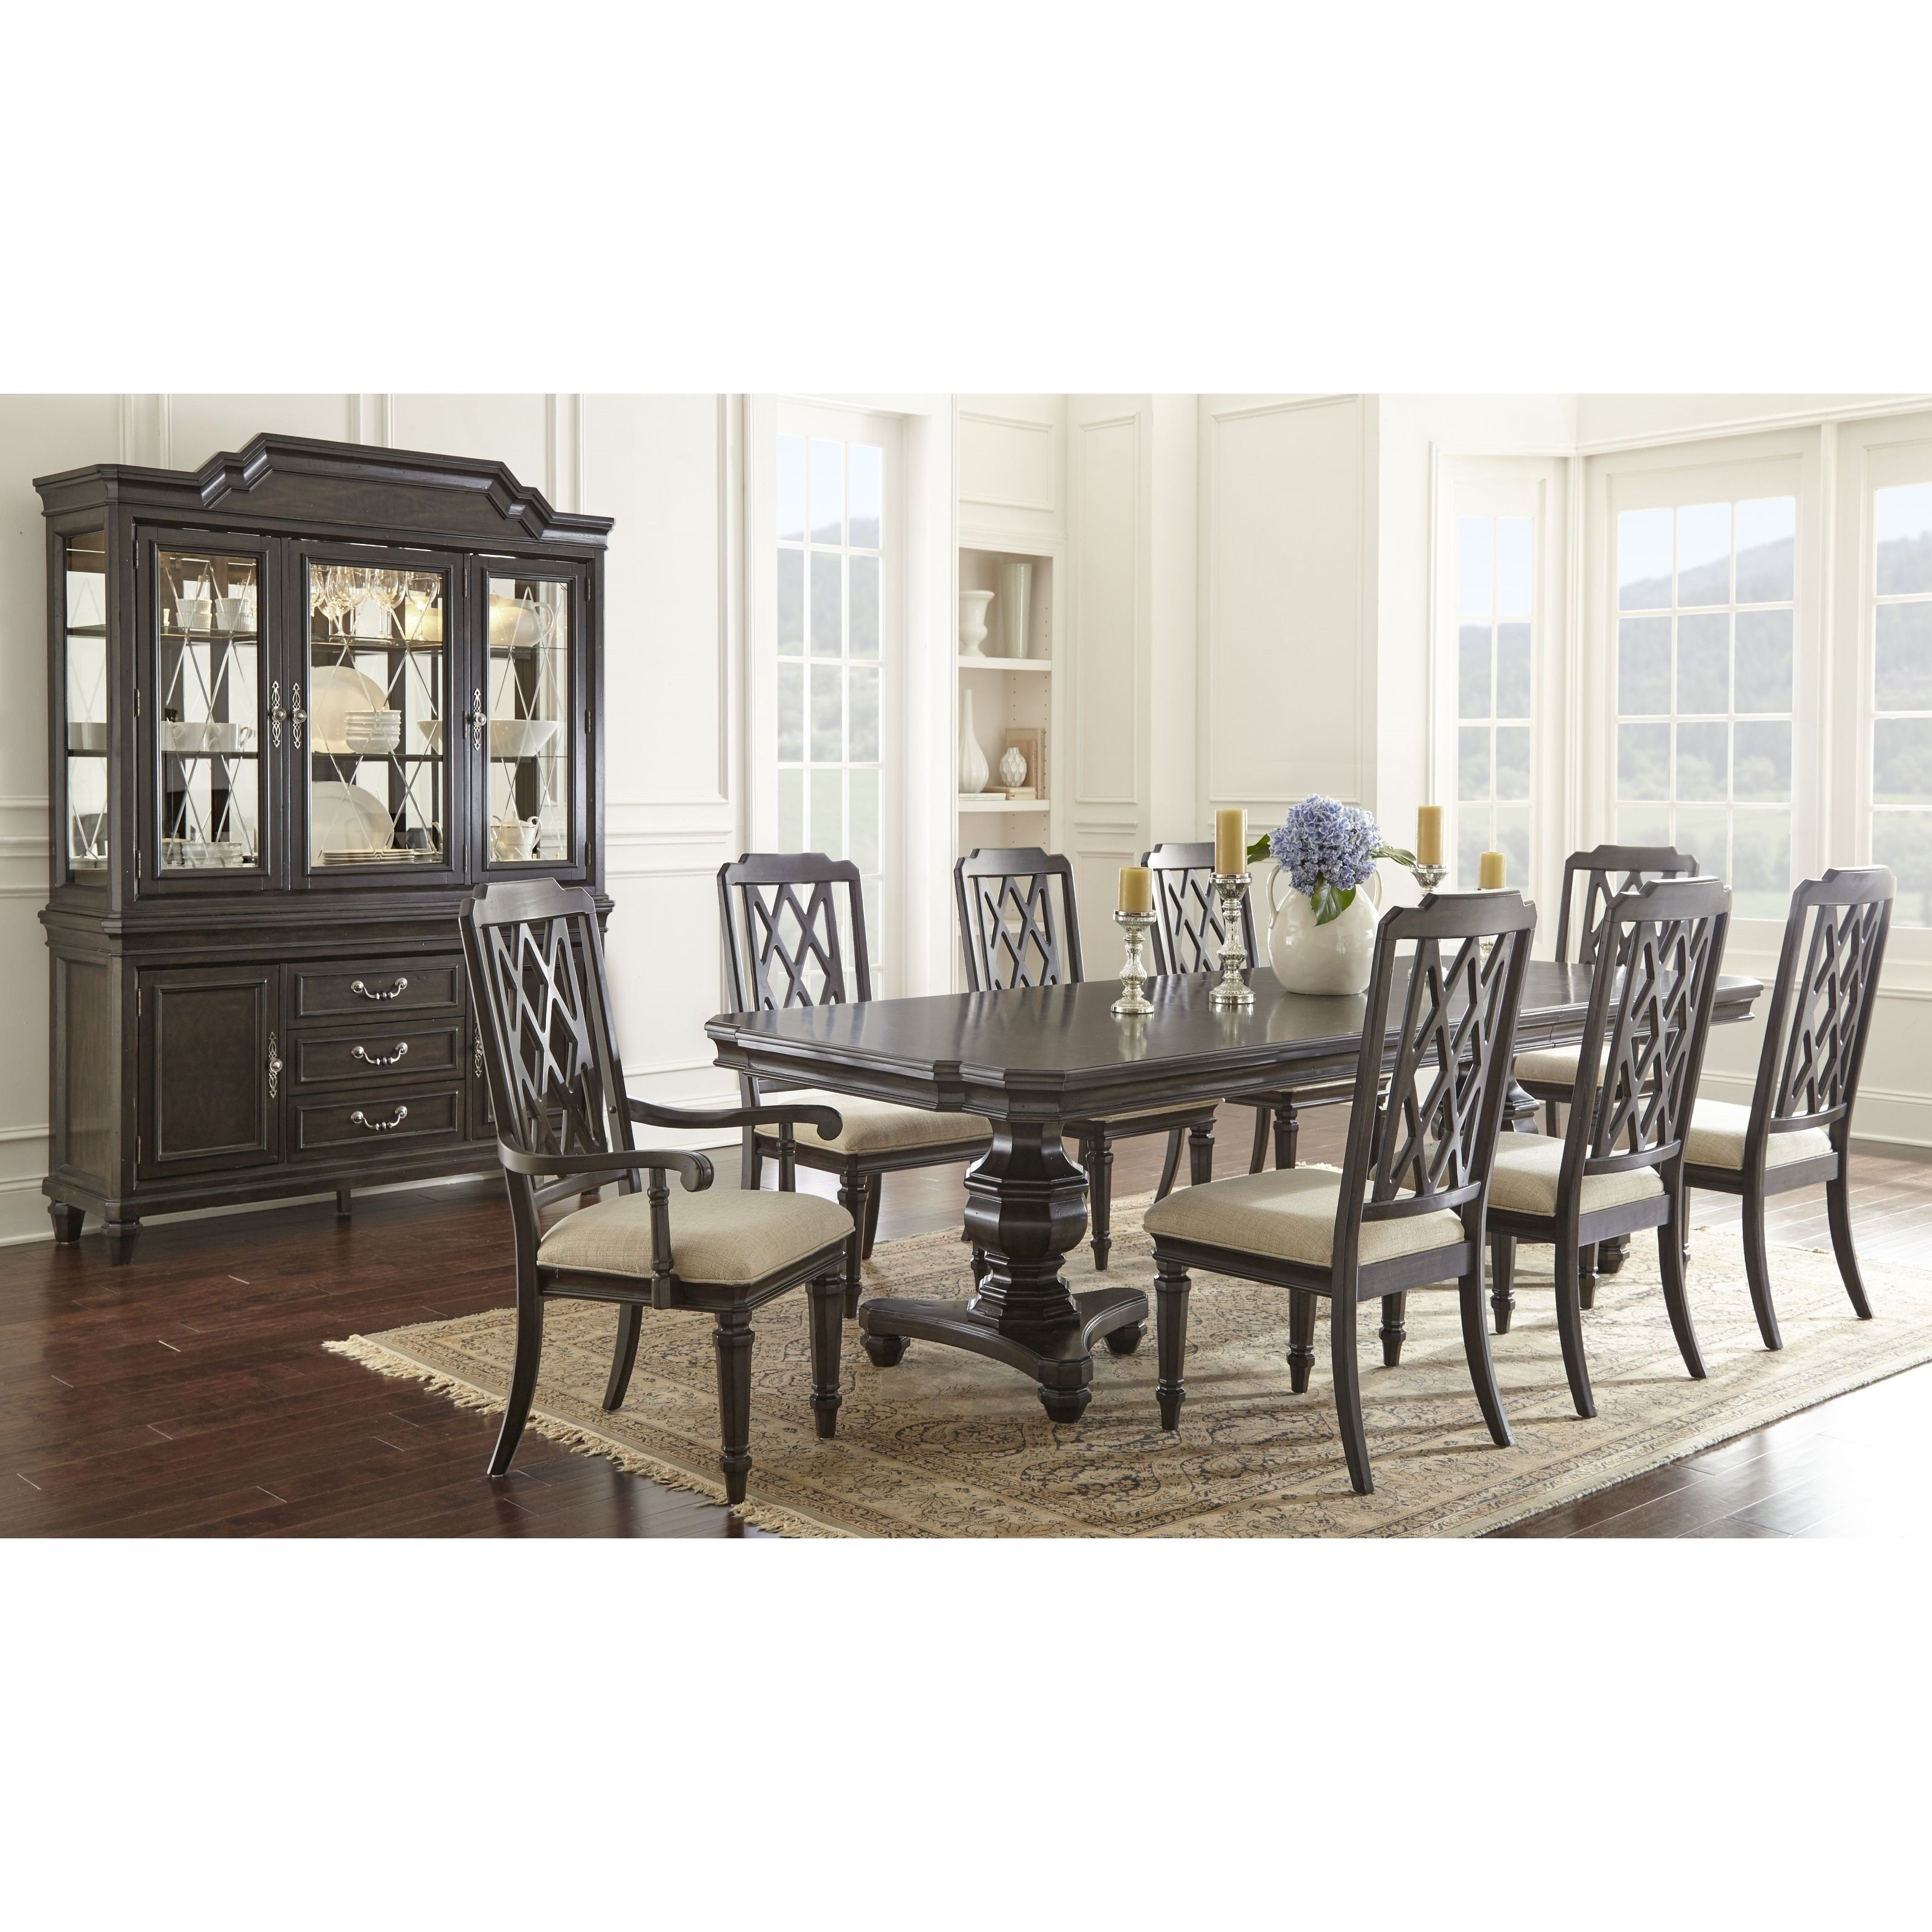 Dining Room Table Size For 10 Amusing Greyson Living Vanderbilt Dining Set Vanderbilt 10Piece Dining Design Inspiration